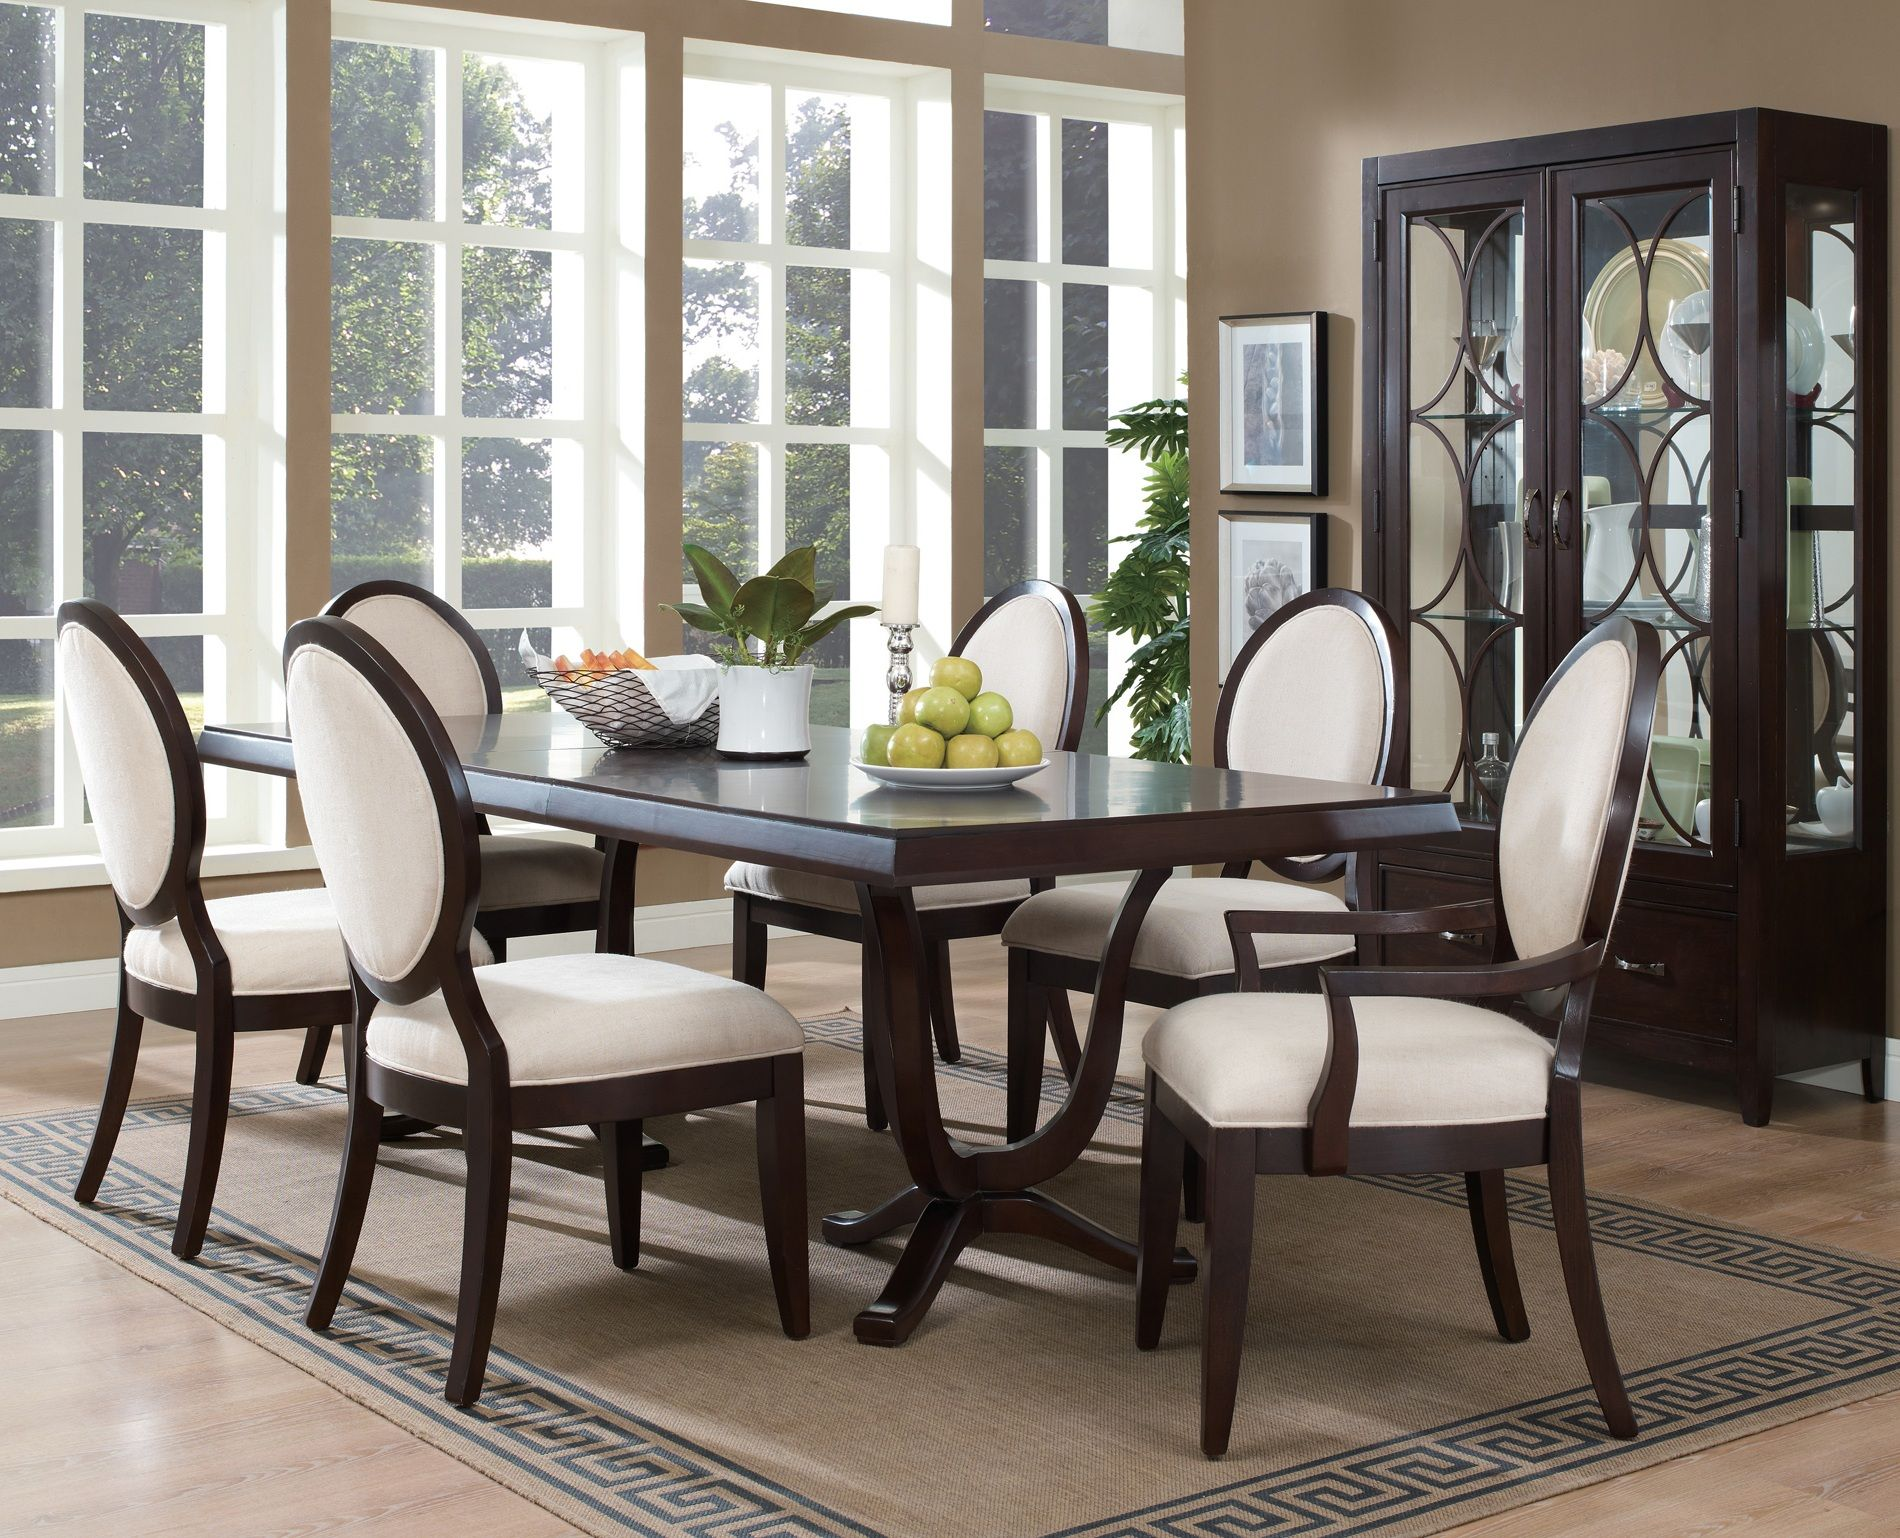 Fascinating Dining Room Set Idea With Two Tone Upholstered Chairs - Modern dining room table sets